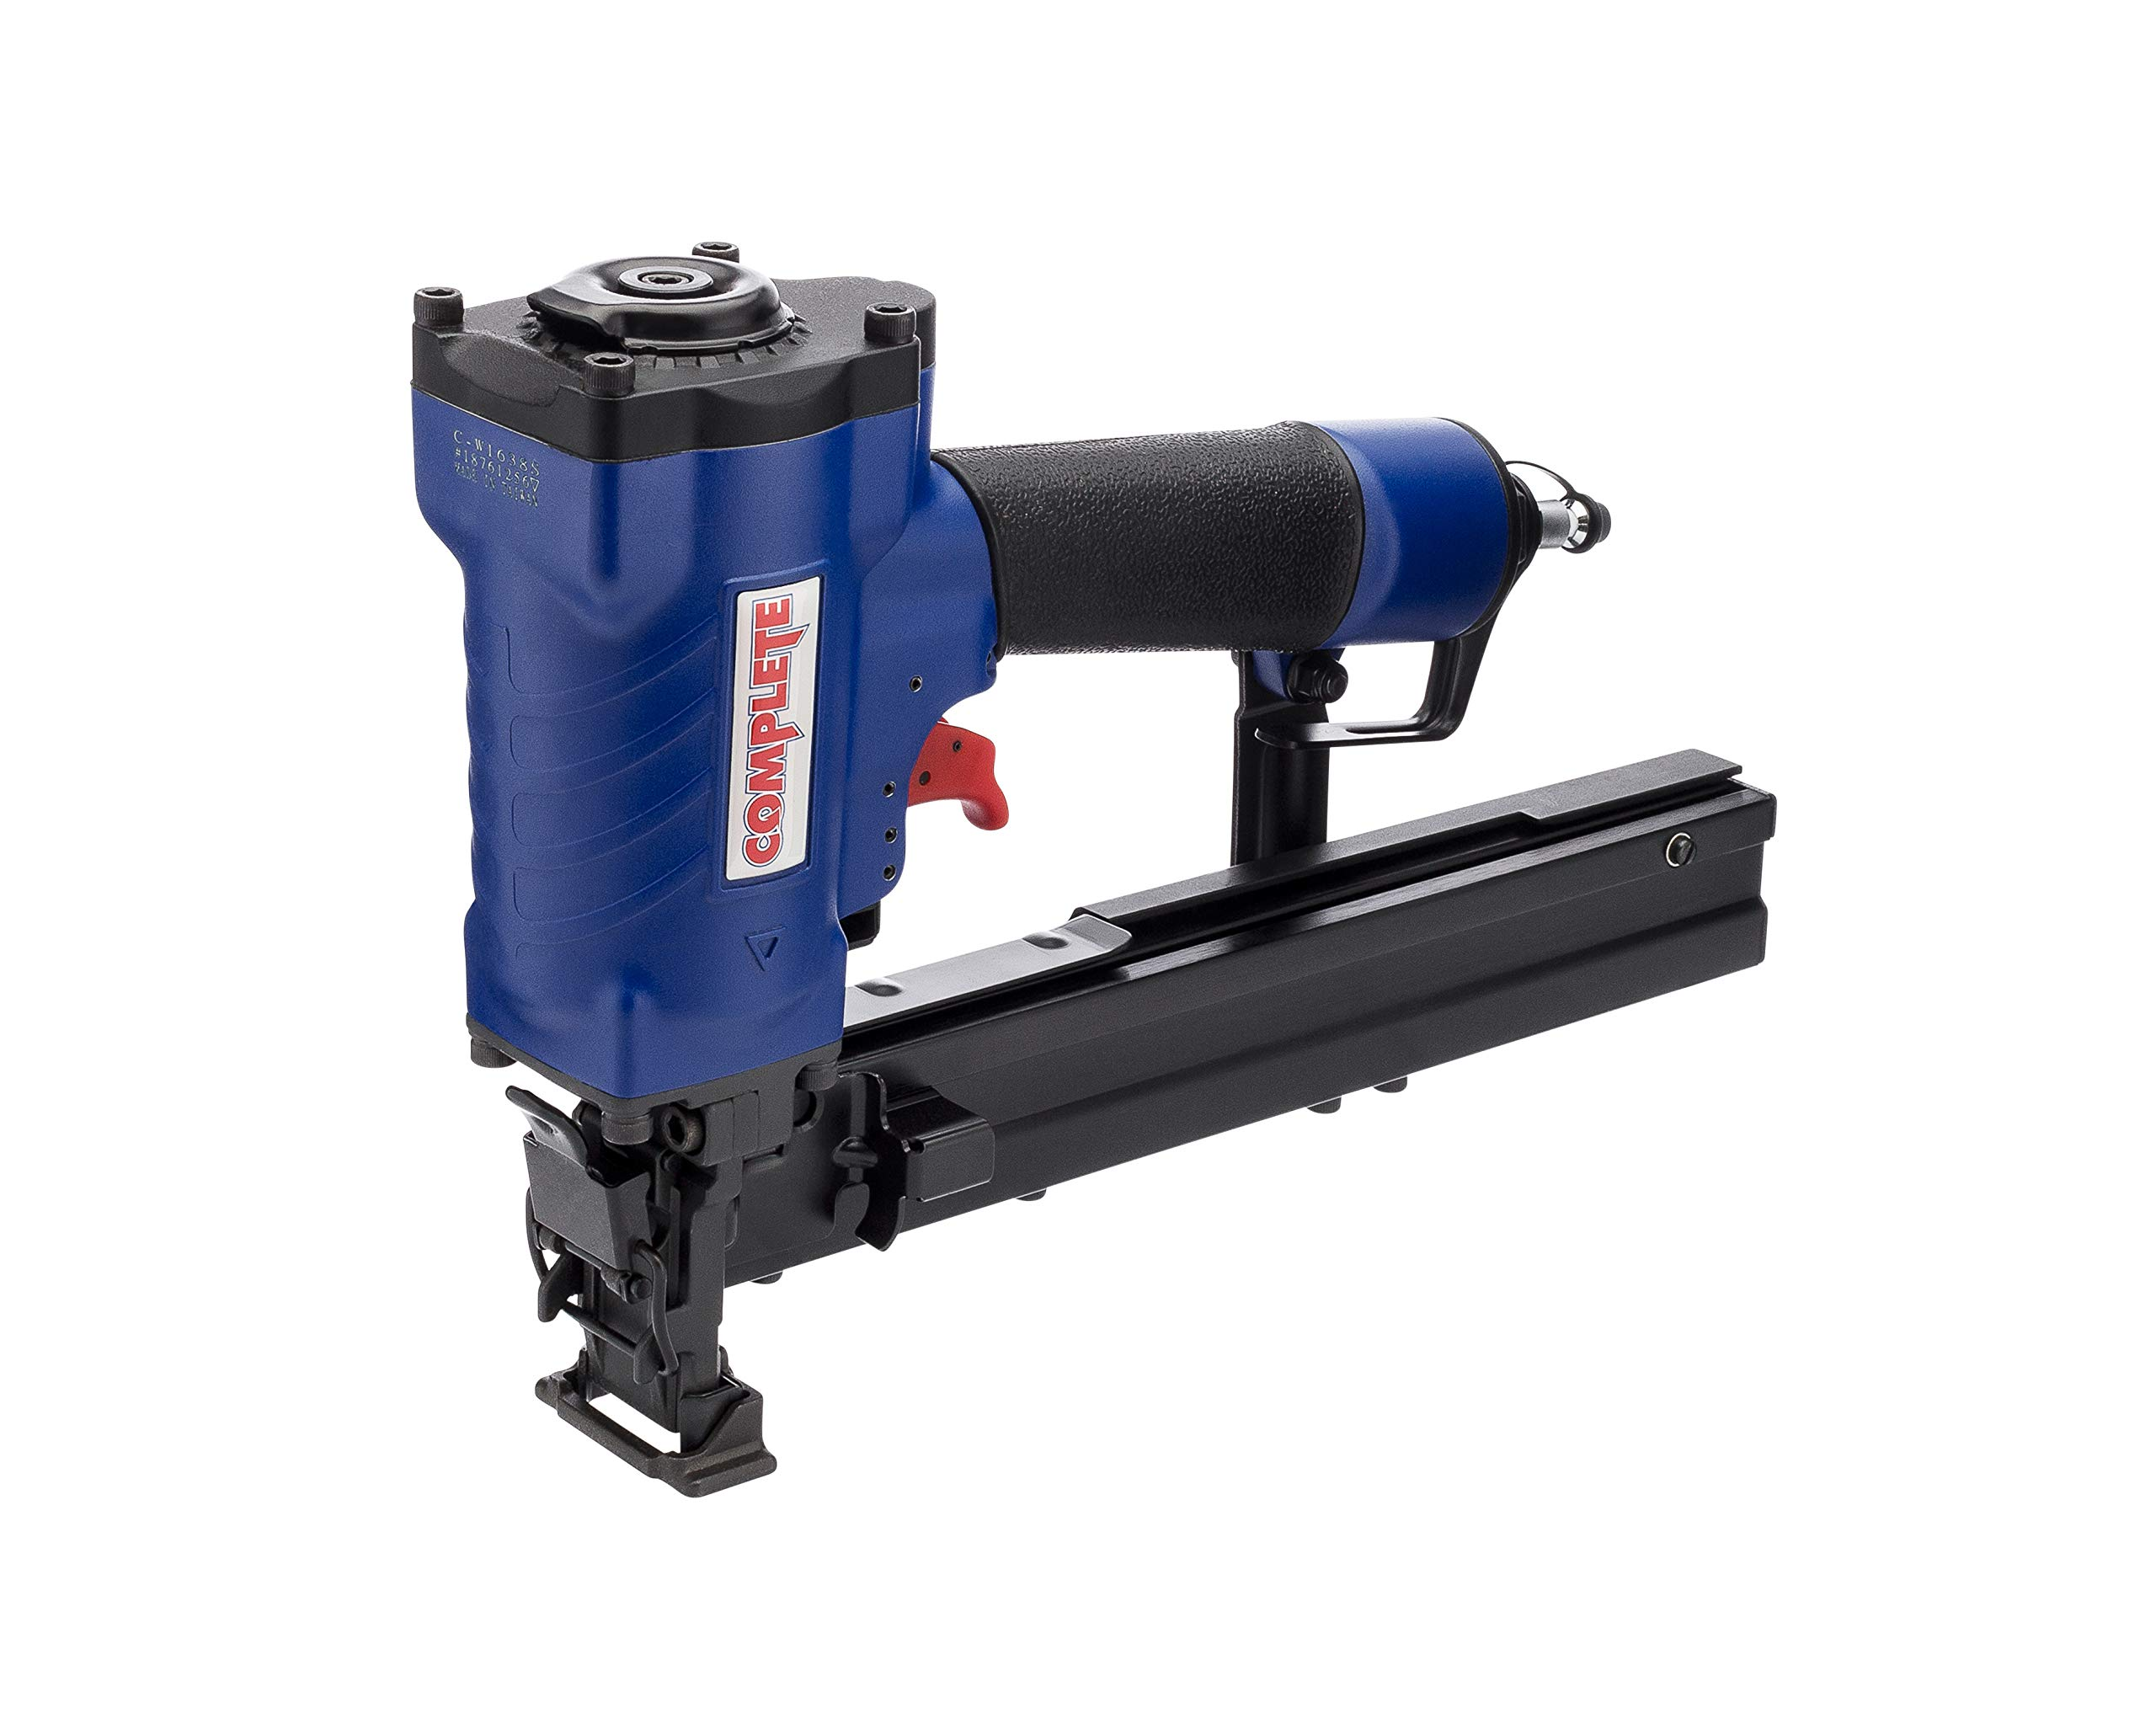 Complete C-W1638P ProGrade 15/16 Wide Crown Stapler 16 Gauge for 3/4 to 1-1/2 Paslode GSW Staples